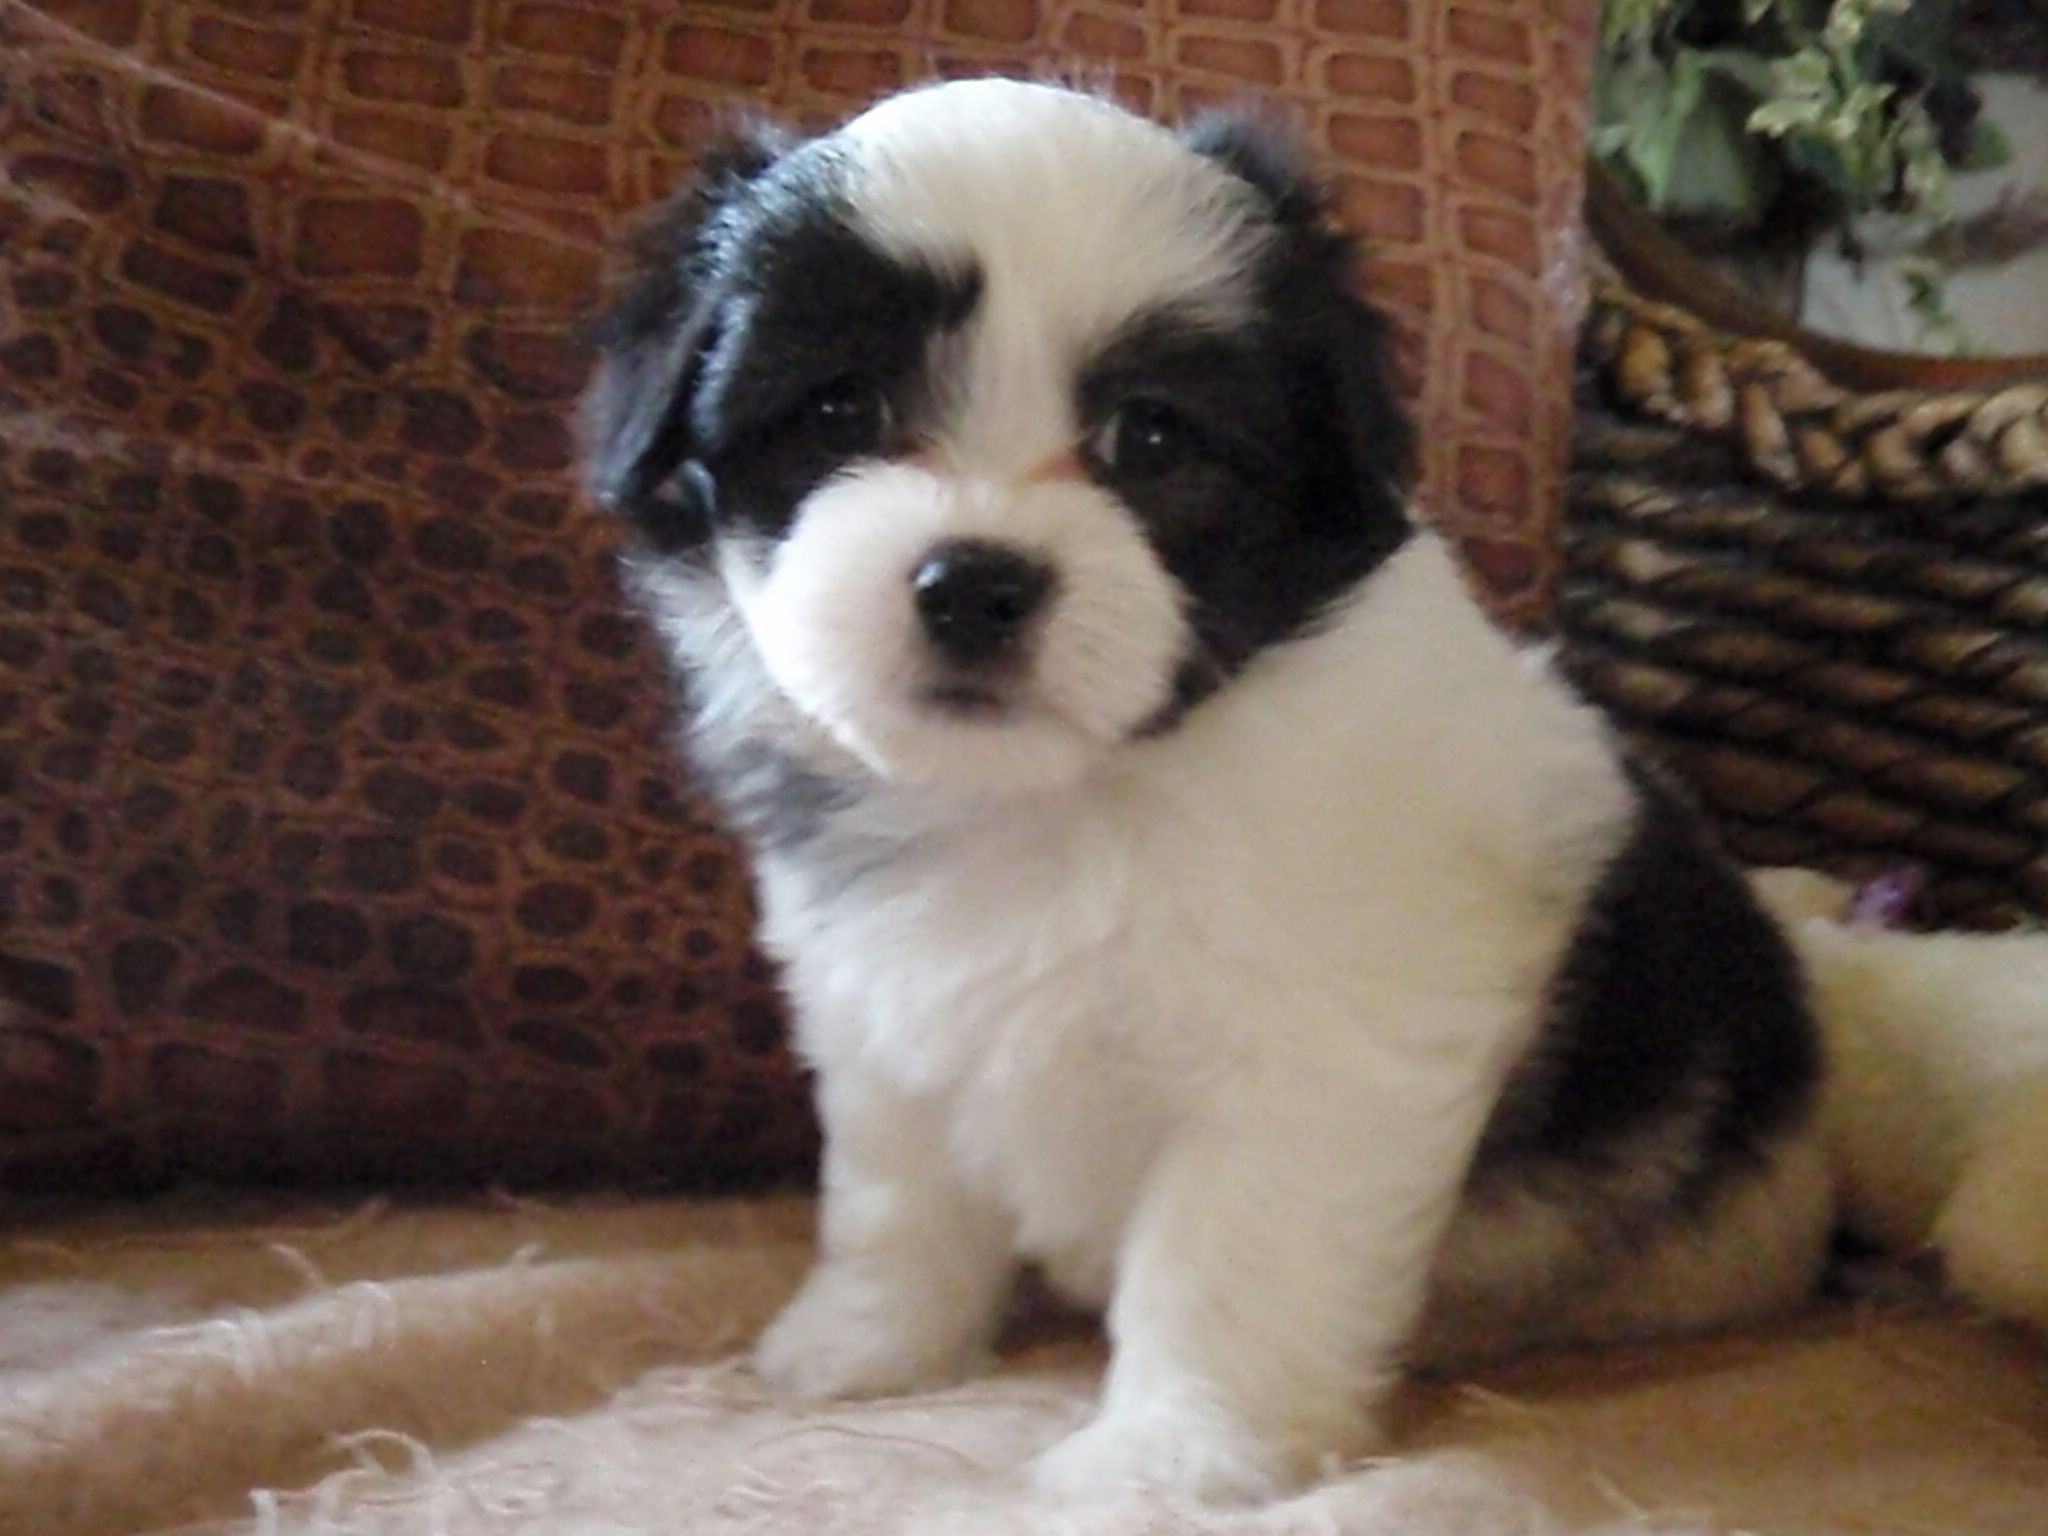 A Lot Of Coton De Tulear Rescue Groups Use Foster Houses To Make Confident Every Single Coton De Tulears For Adoption Is Coton De Tulear Bebes Animaux Animaux